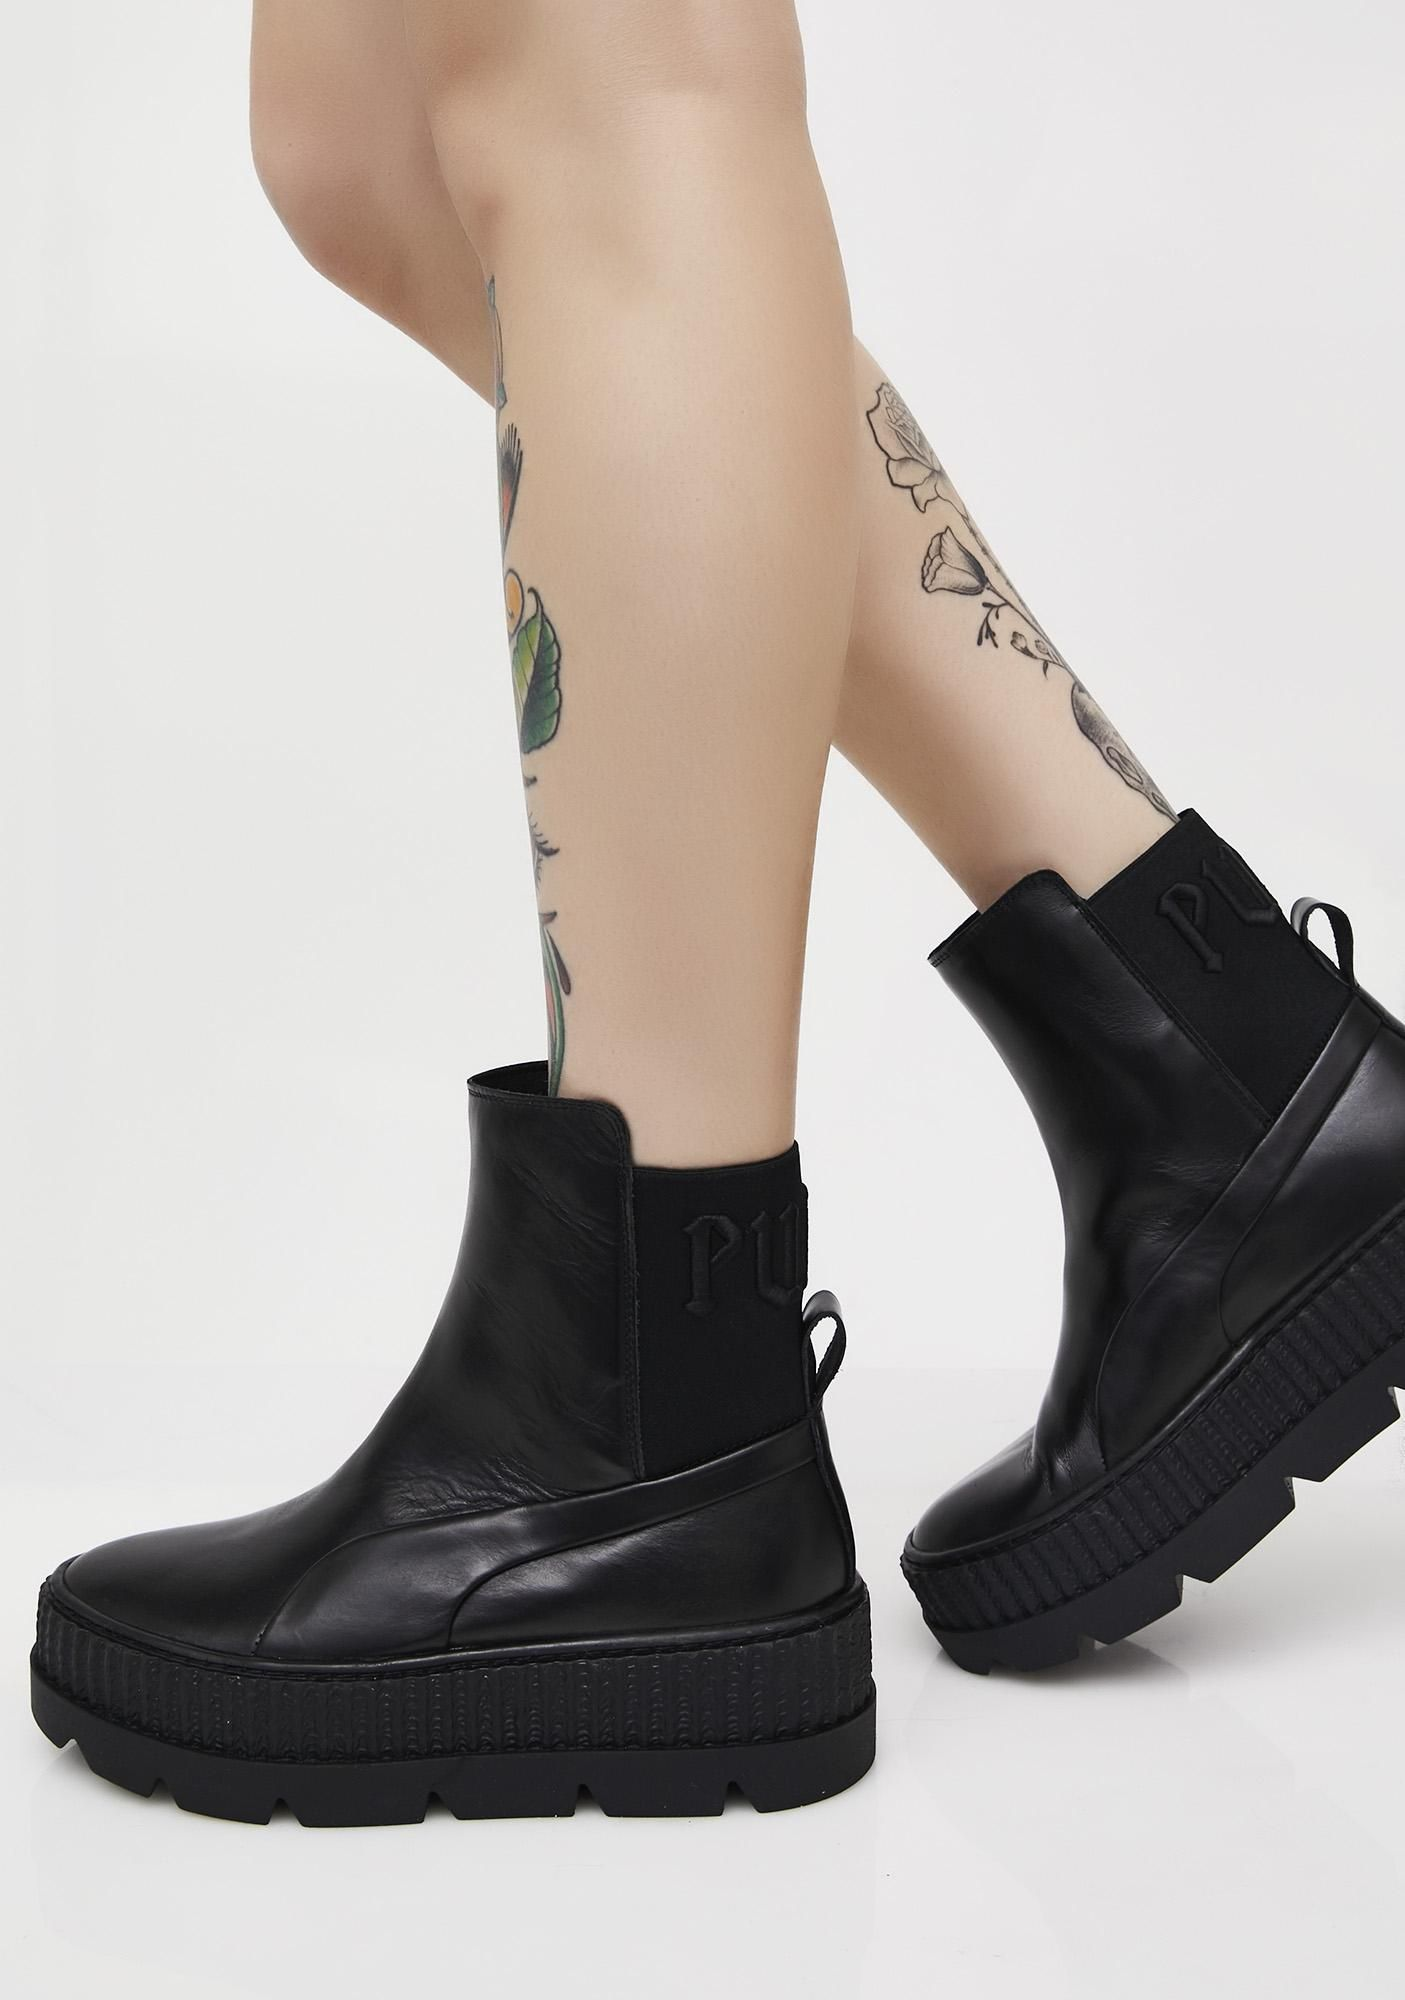 "749d59bcd98d PUMA FENTY PUMA By Rihanna Chelsea Sneaker Boots got ya on another level.  These black sneaker boots have thikk soles and ""PUMA"" text on the back."